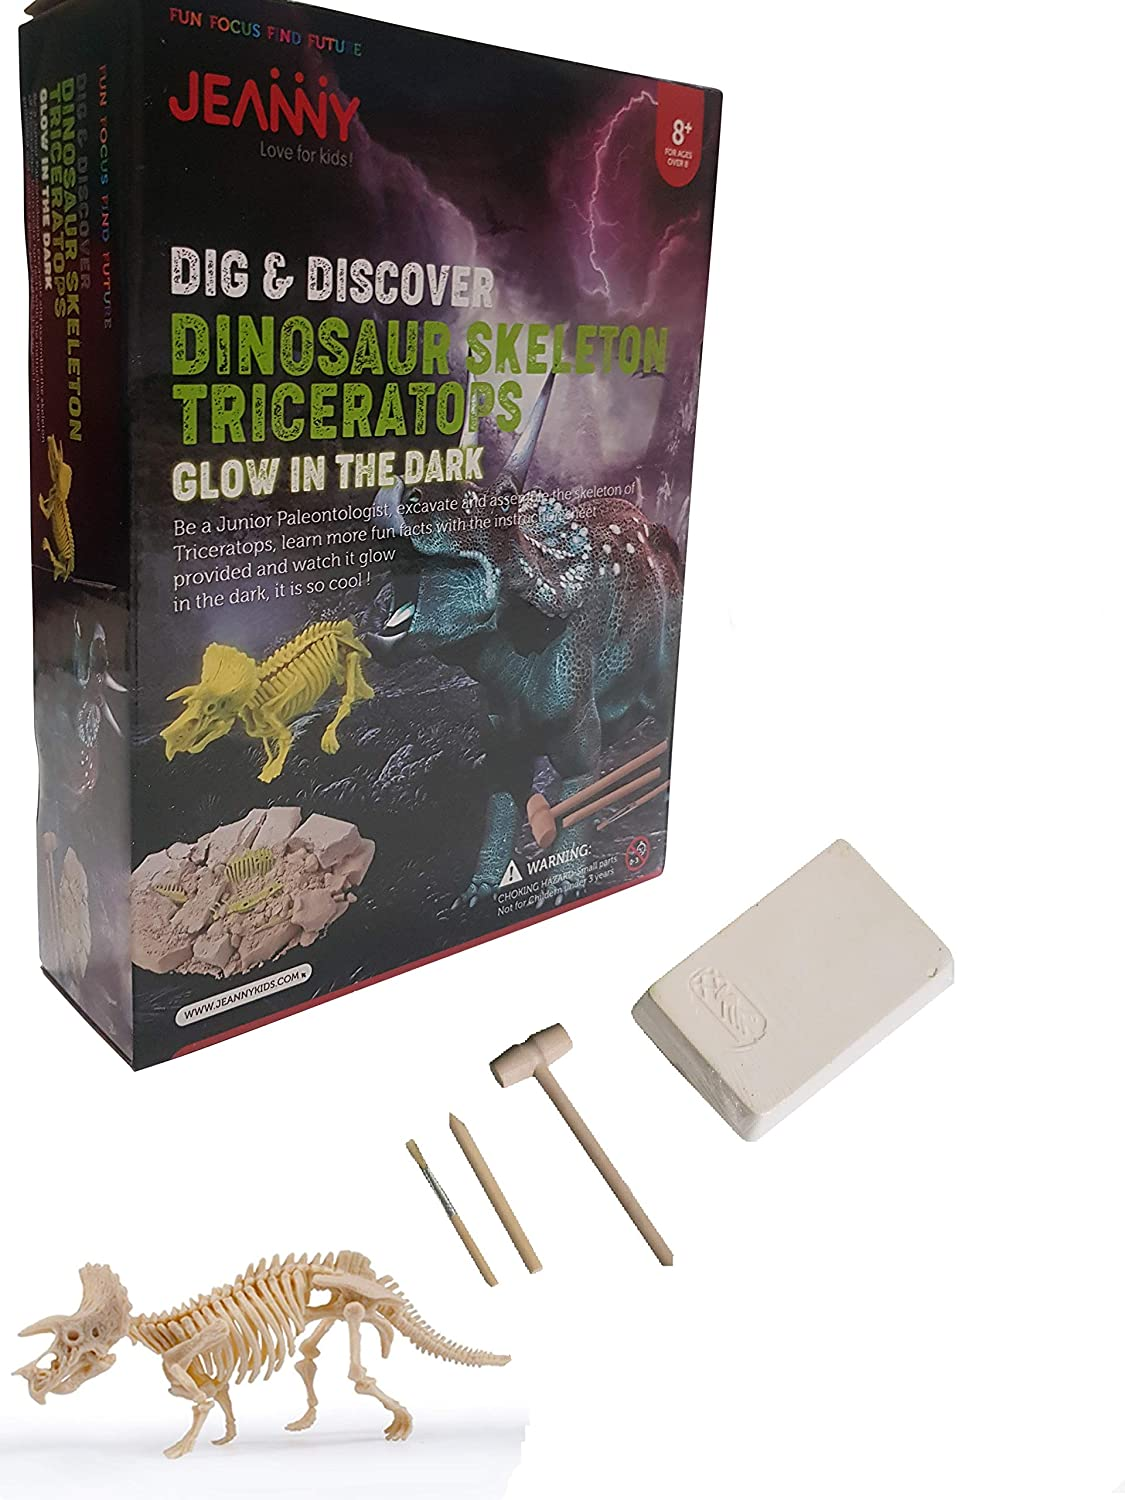 New Recruits Dinosaur Fossil Dig Kit - Triceratops Paleontology Science Set with Digging Block, Glow-in-The-Dark Dino Bones, and Excavation Tools-Fun and Educational Gift for Boys and Girls 8 and Up